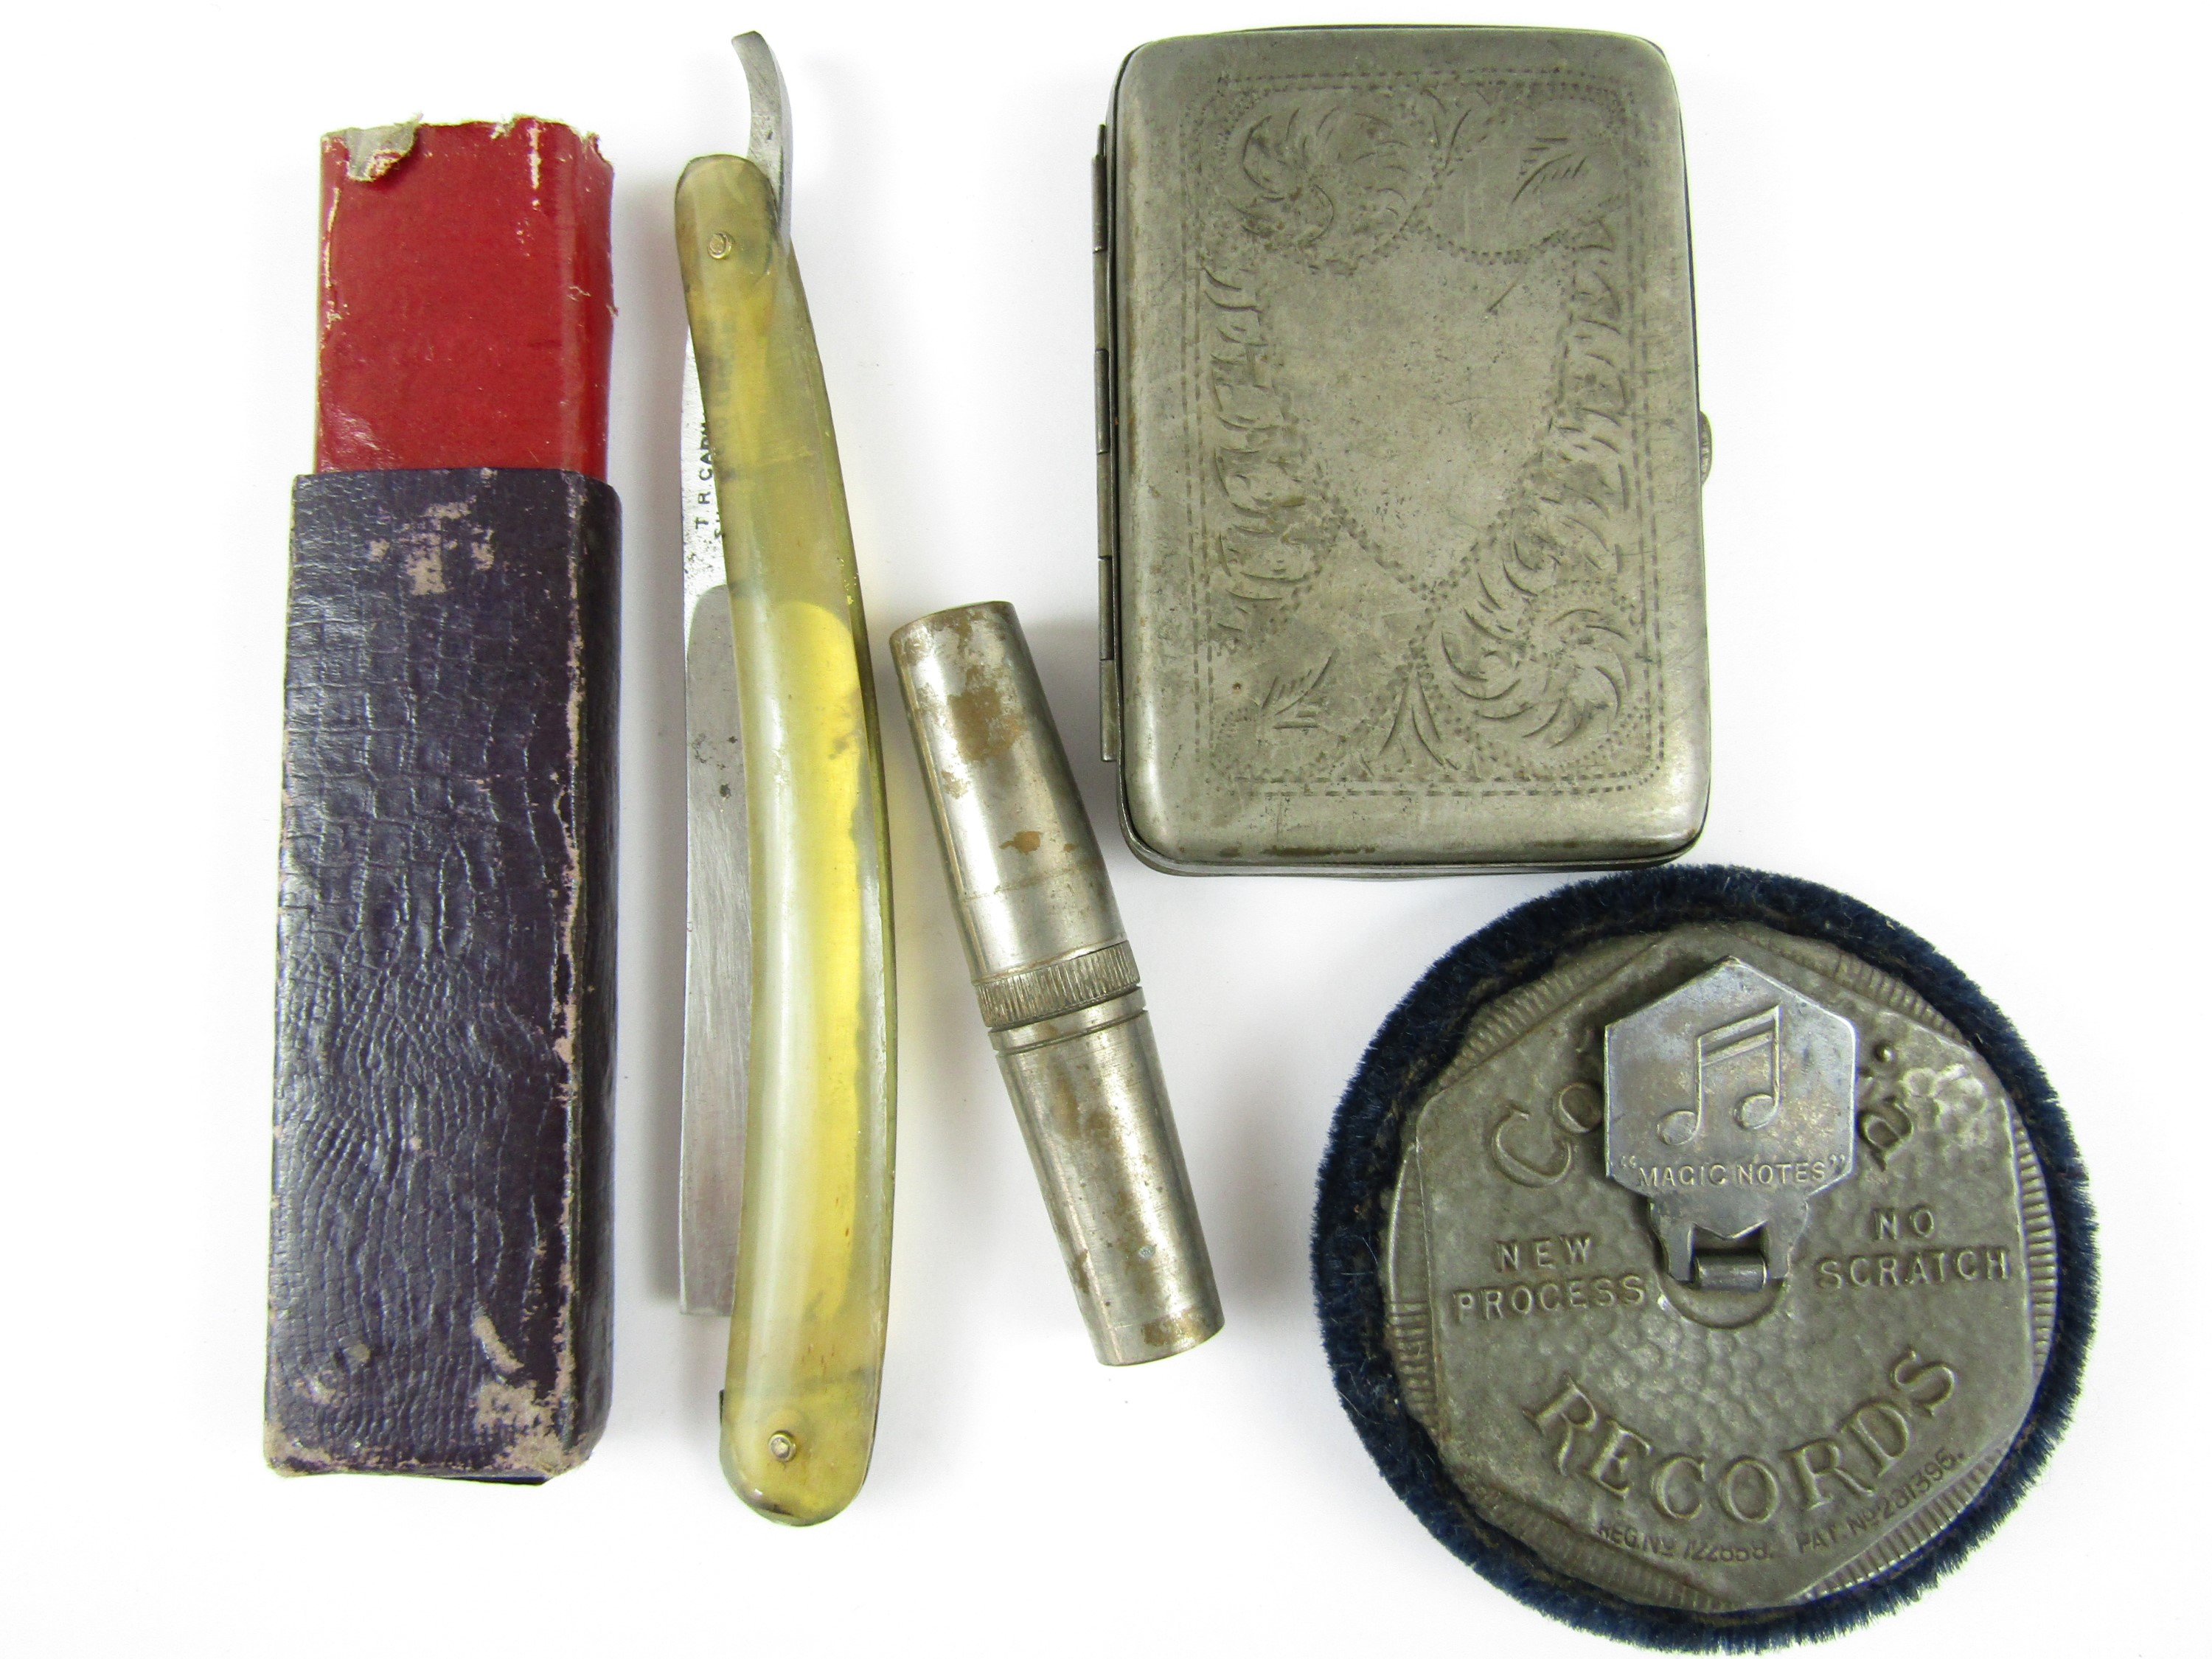 Lot 51 - Sundry collectors' items including a cut throat razor, a Columbia Records 'Magic Notes' duster and a